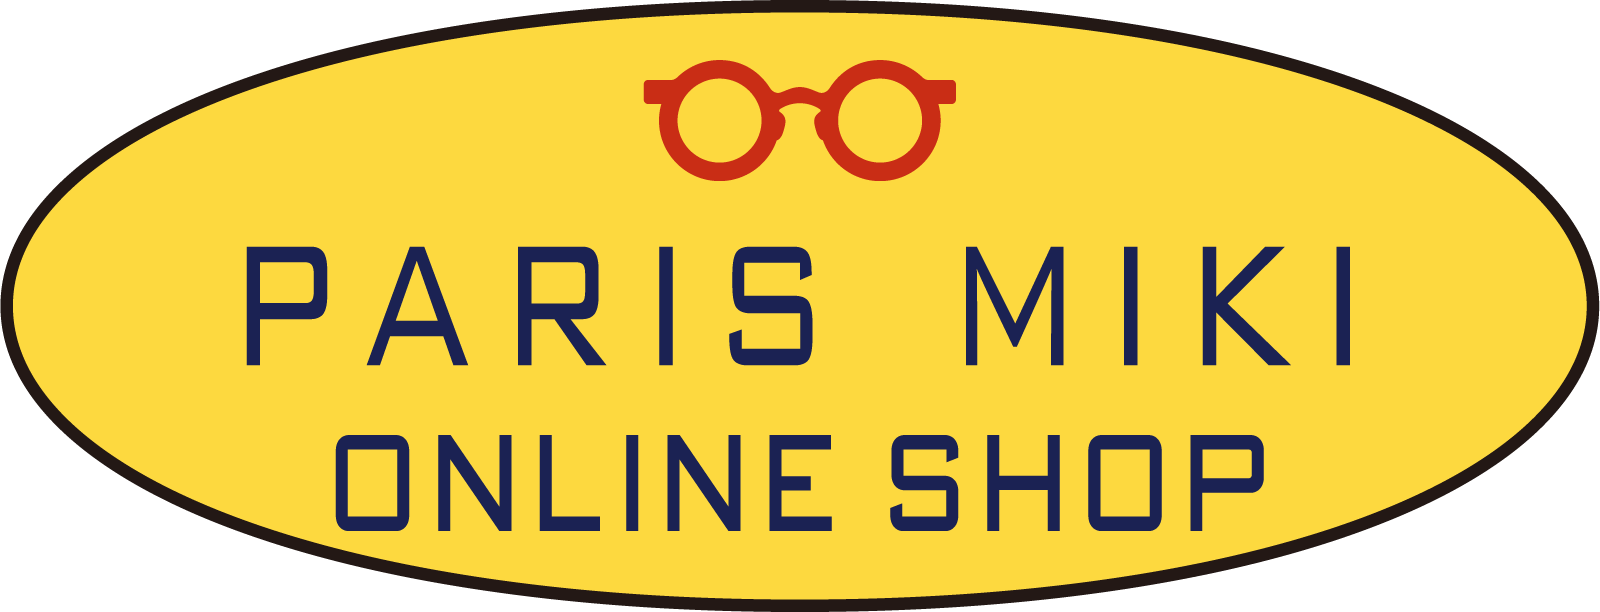 PARIS MIKI ONLINE SHOP